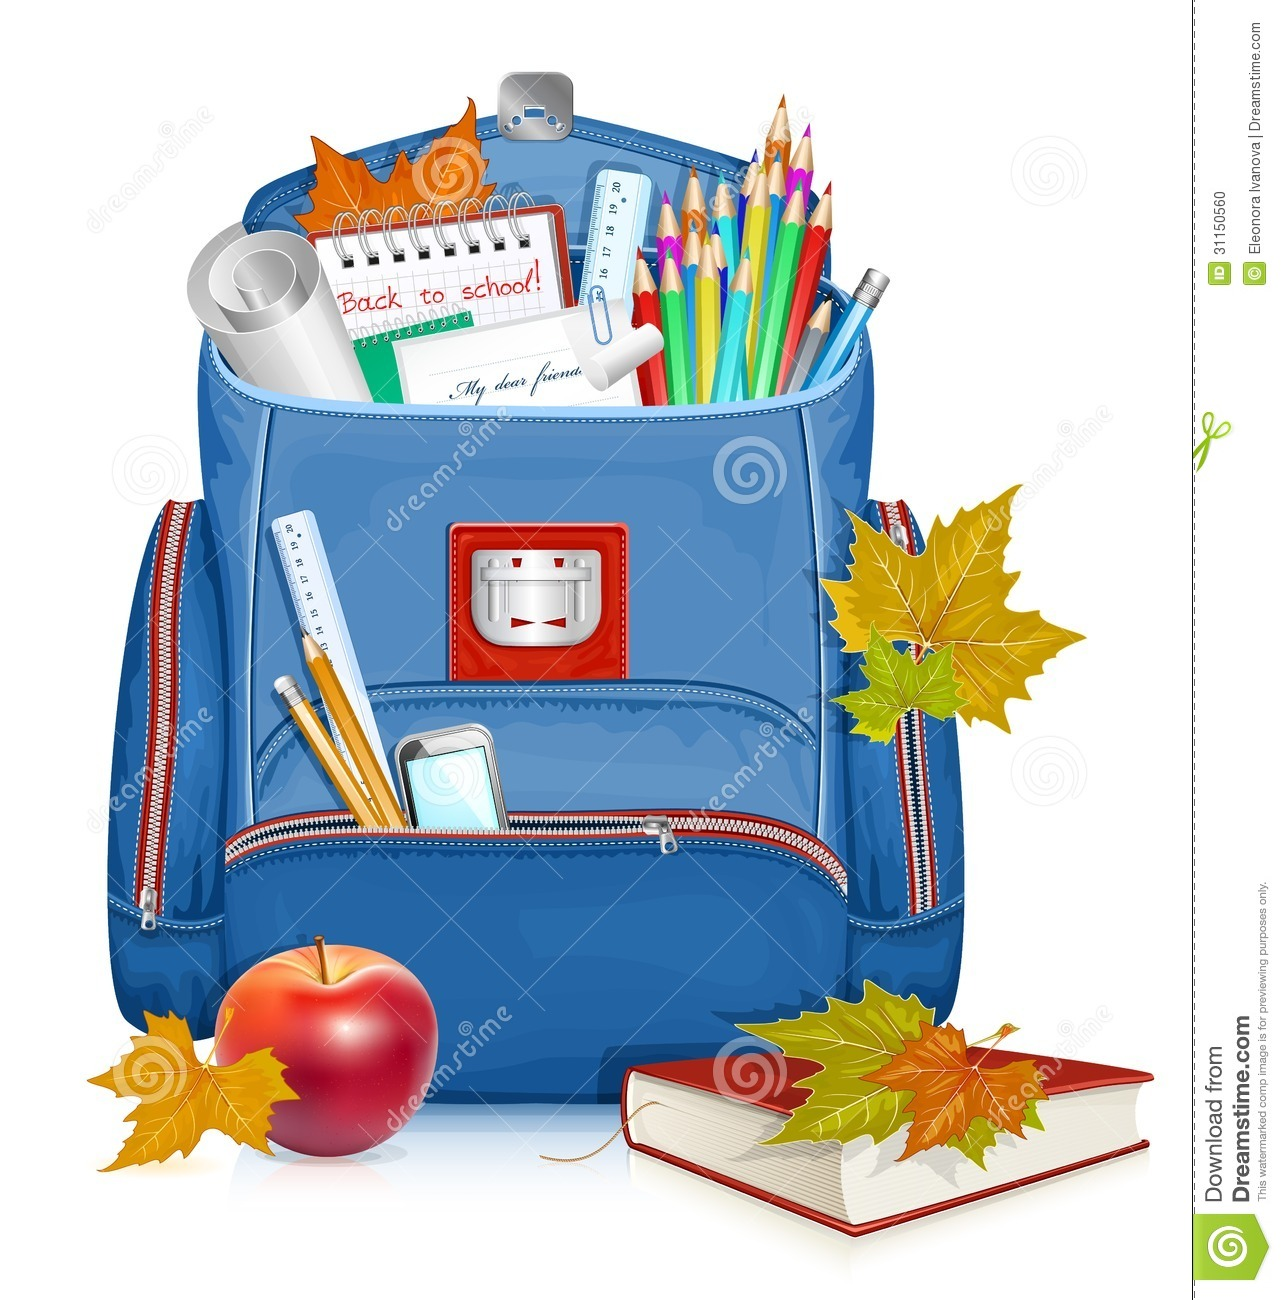 School bag with education objects